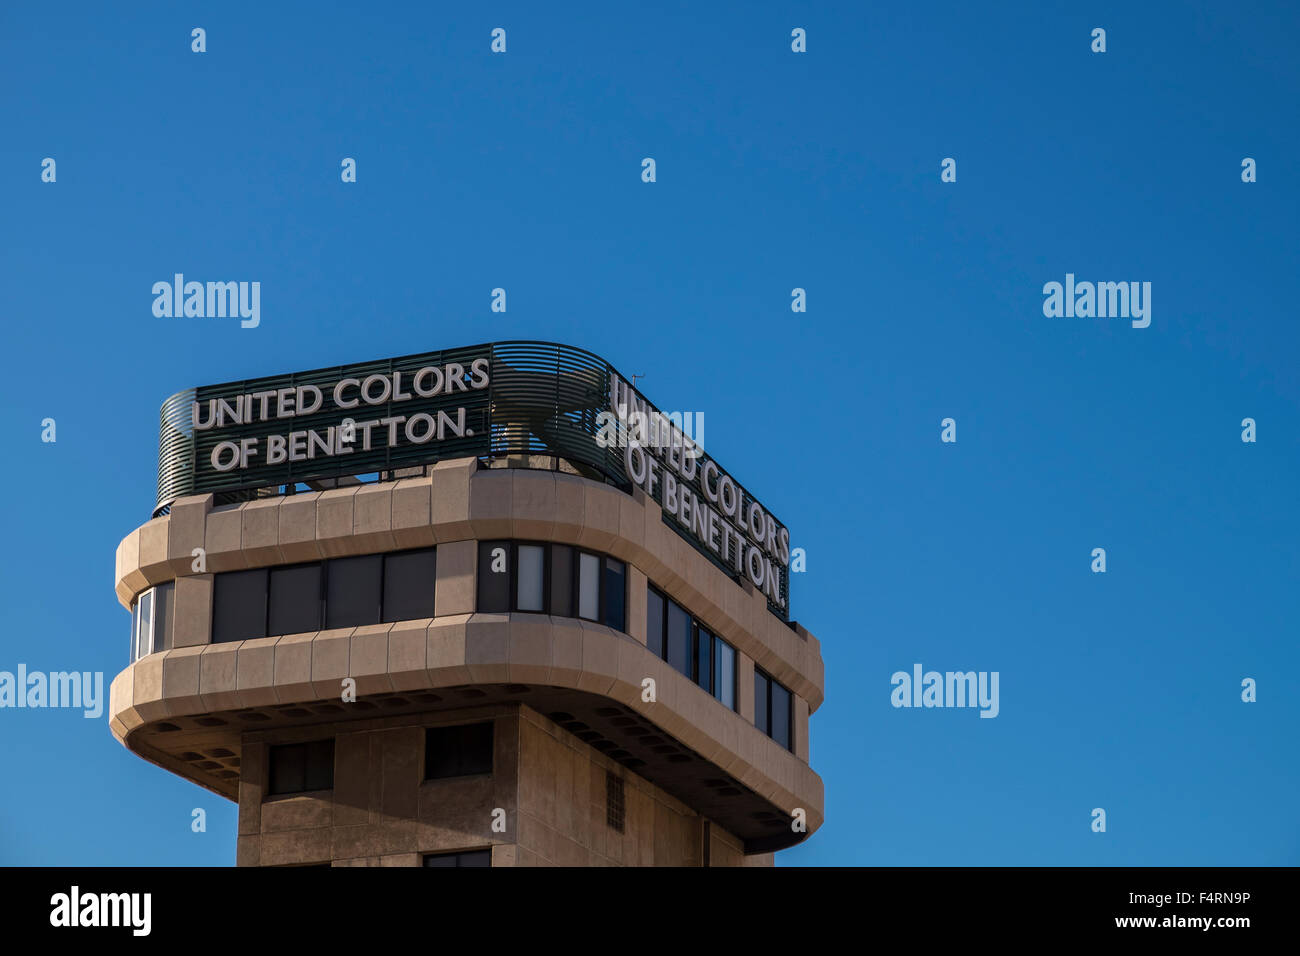 Benetton advertising on the roof of a building in Santa Cruz, Tenerife, Canary Islands, Spain. - Stock Image